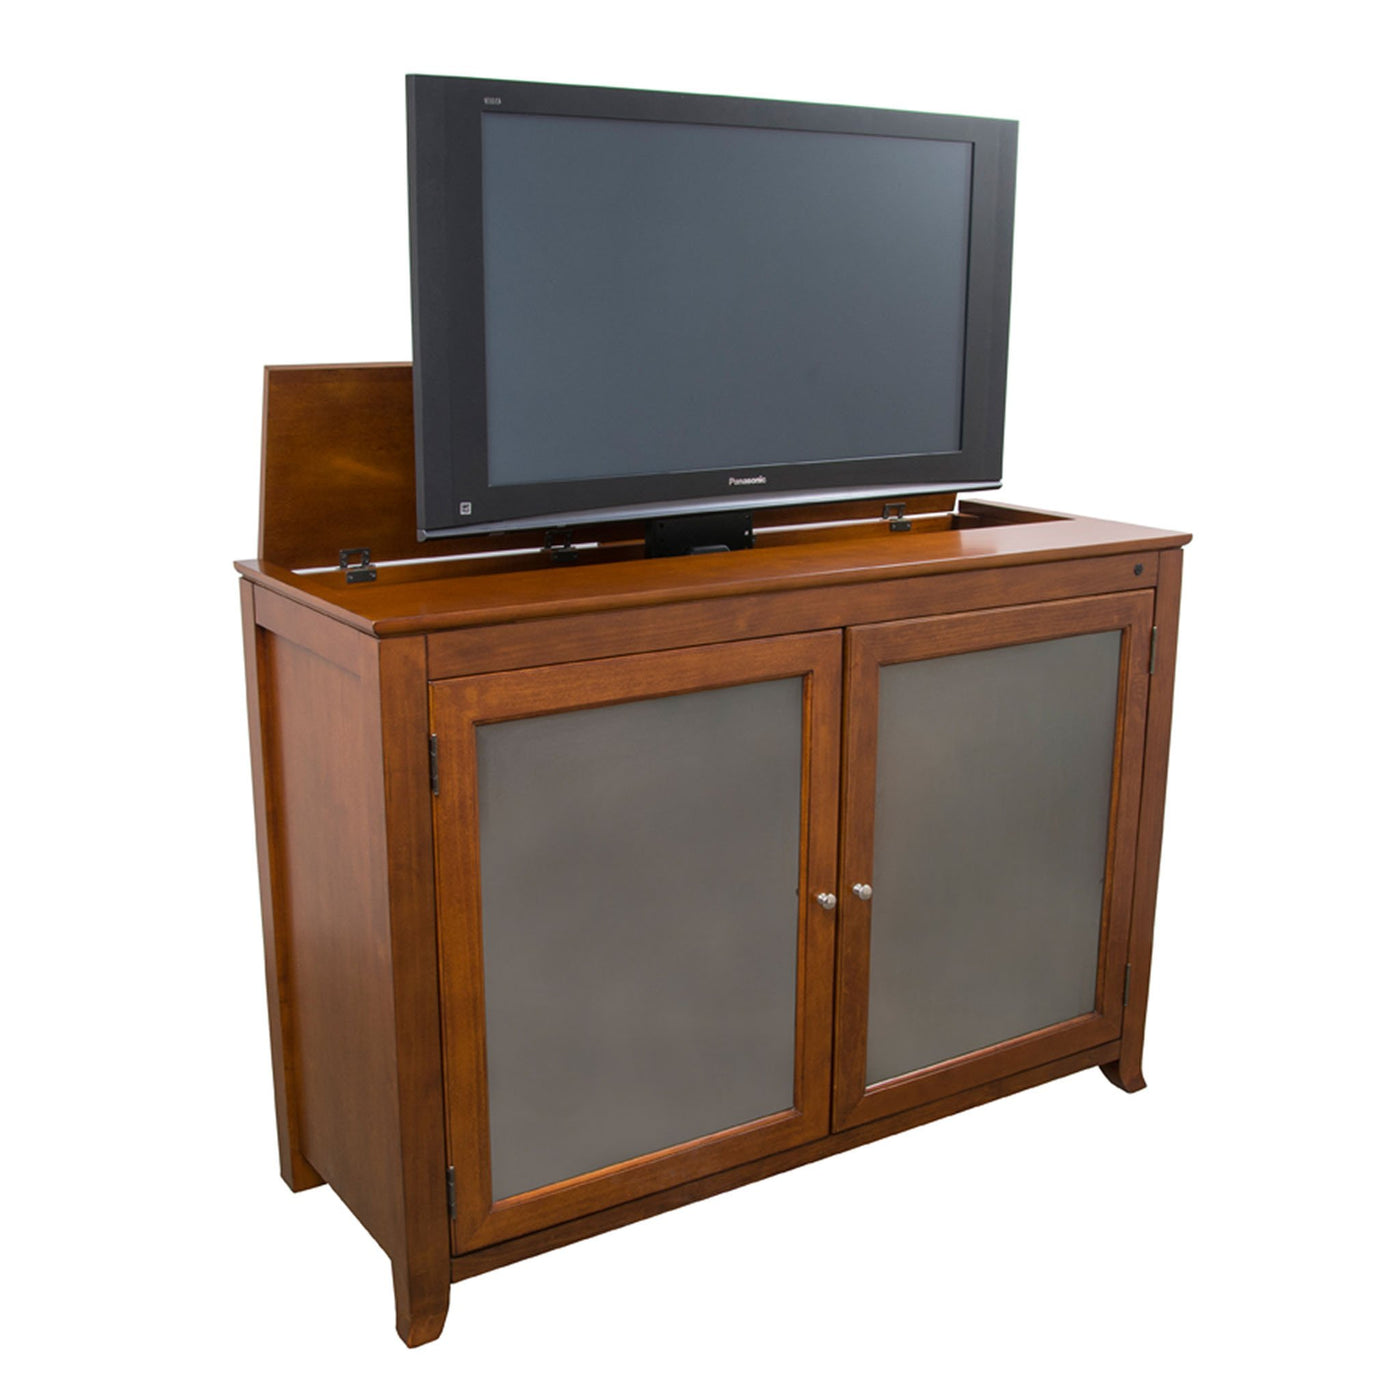 Brookside 70054 Tv Lift Cabinet For 60 Flat Screen Tvs